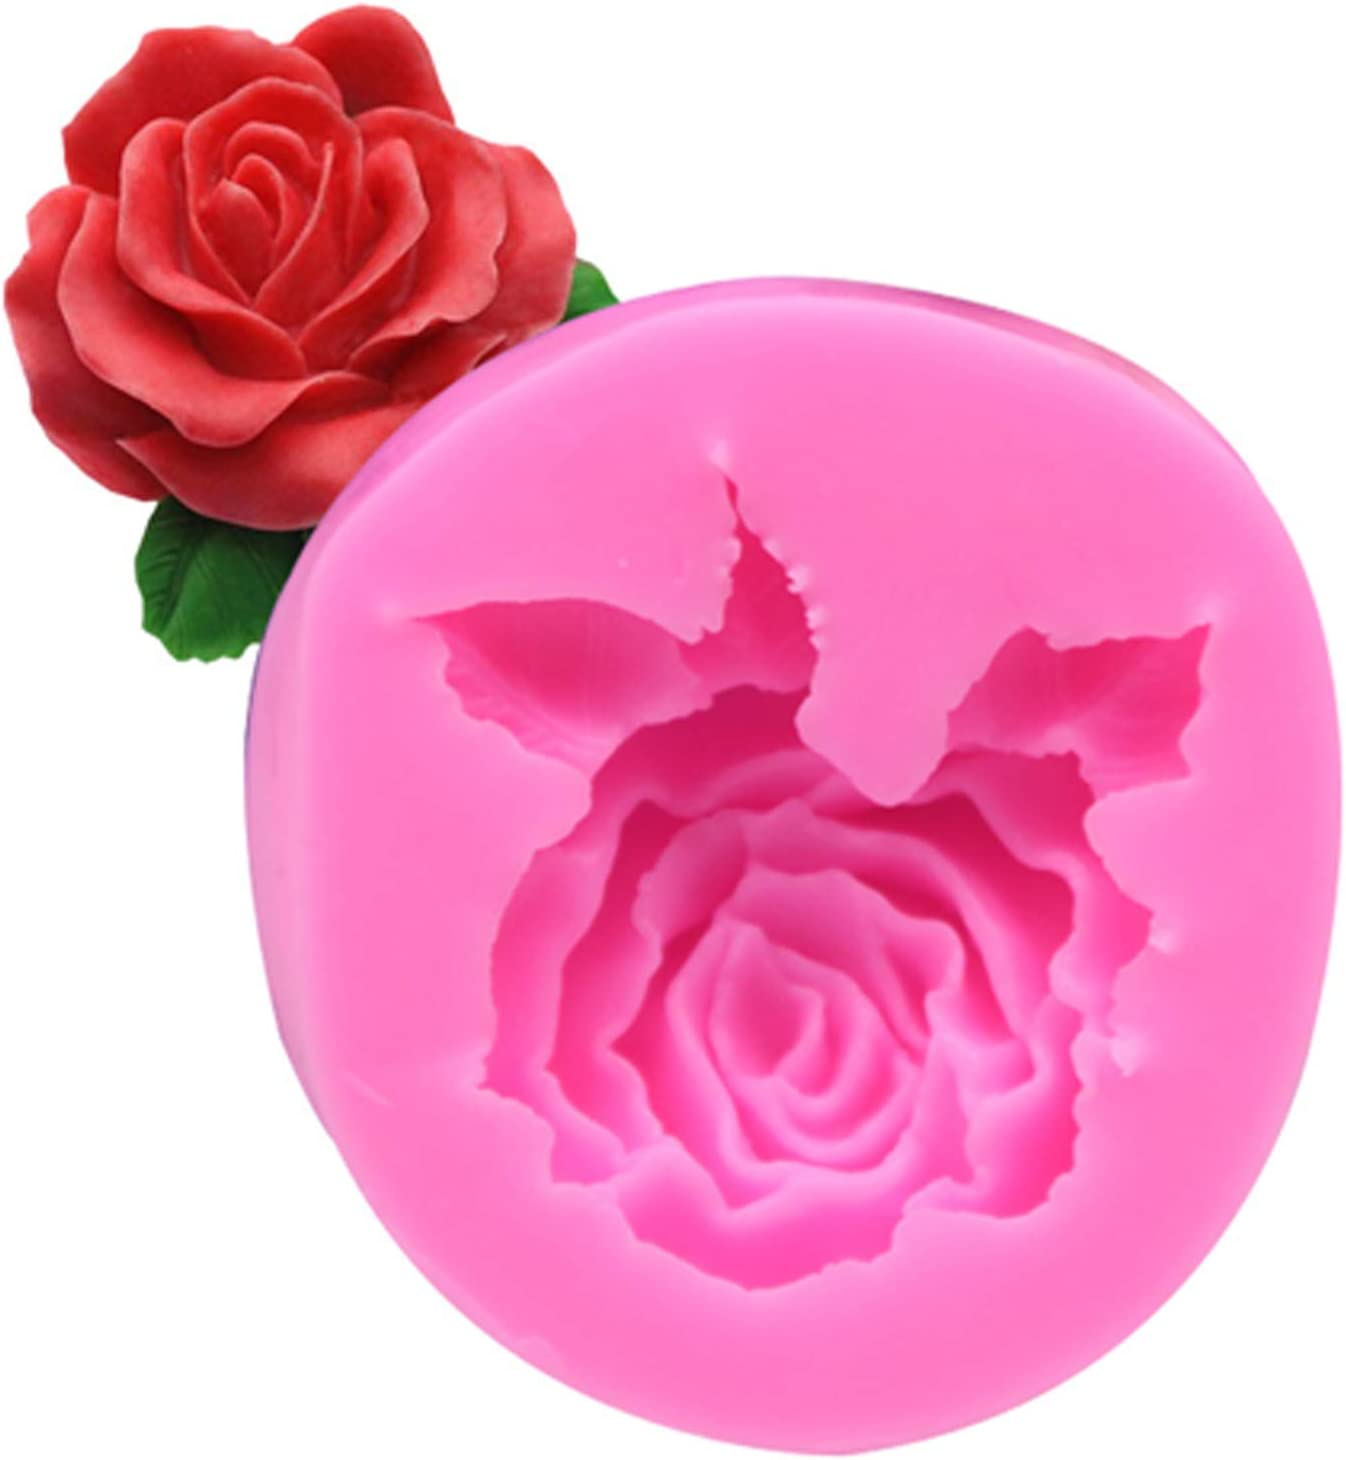 3D Flower Silicone Soap Shape Rose New Shipping Free Shipping Mold gift Resin